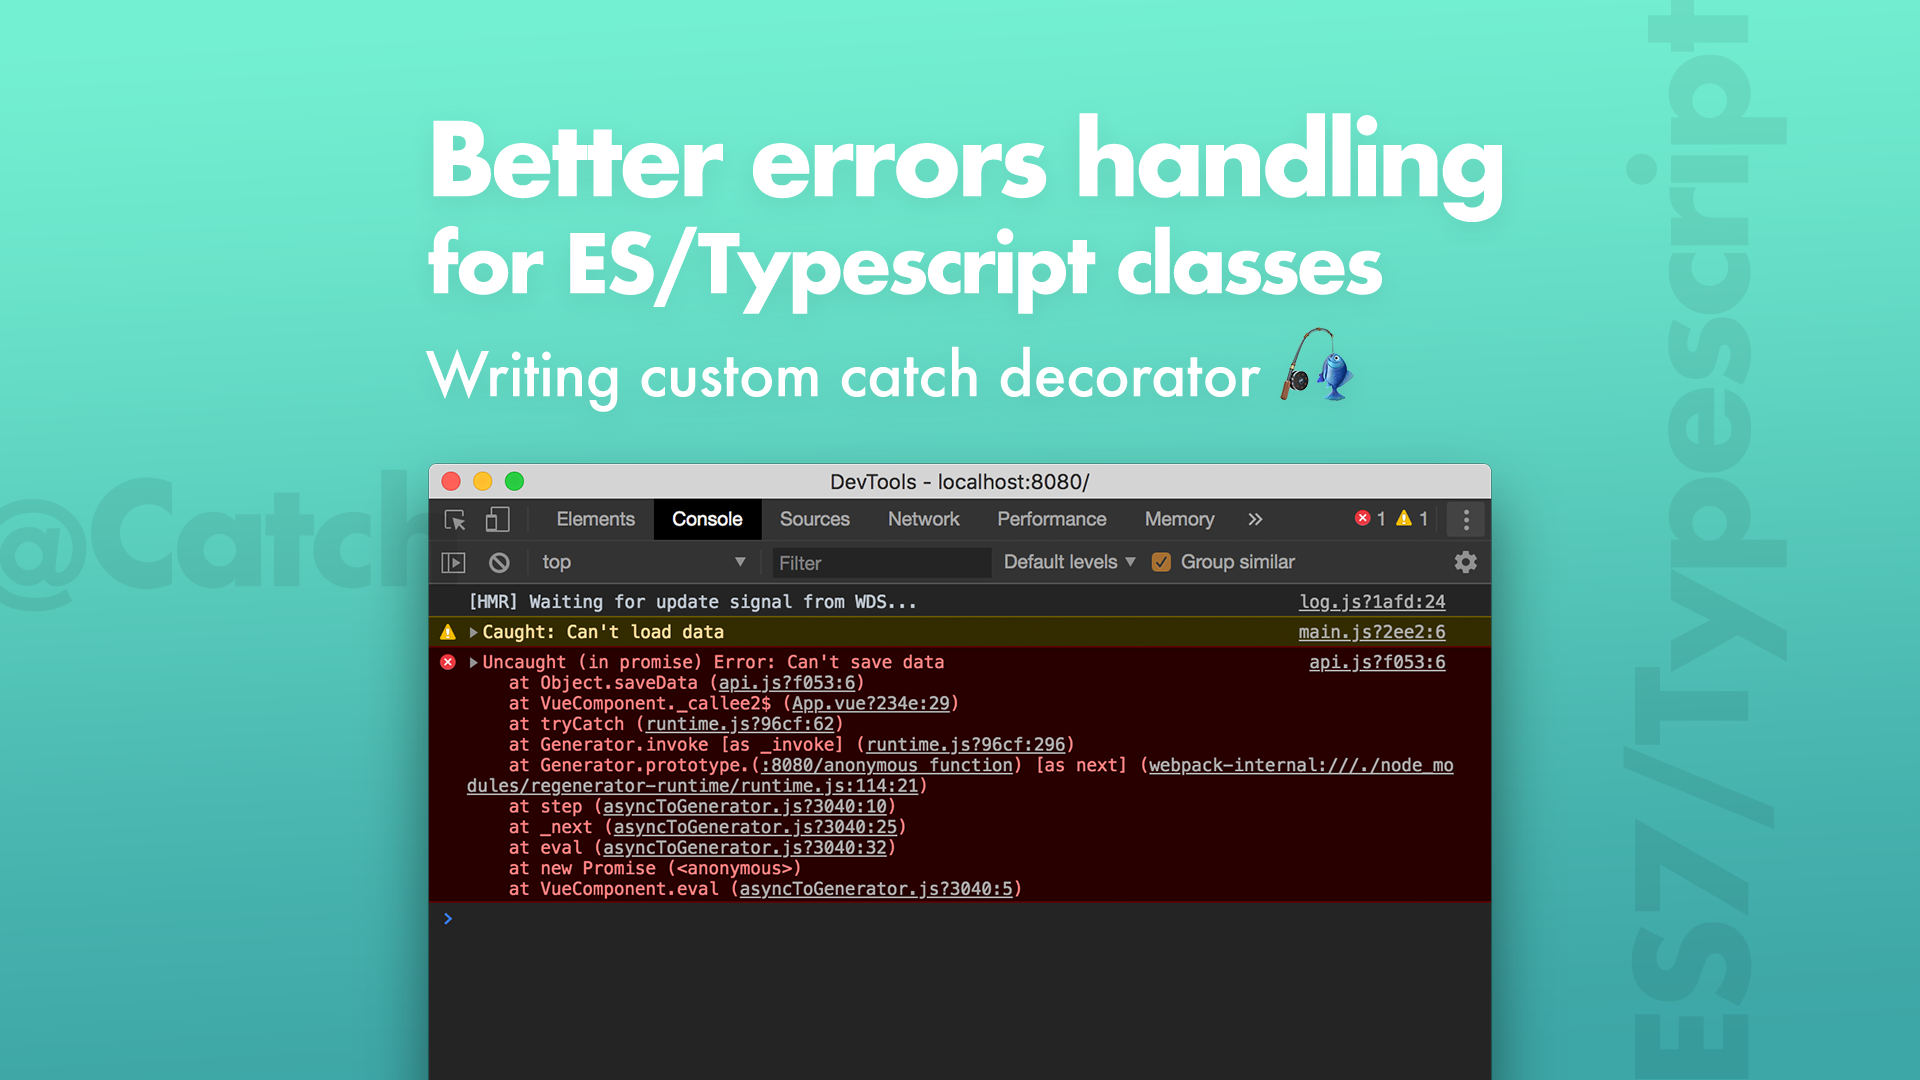 Better errors handling for ES/Typescript classes - Bits and Pieces